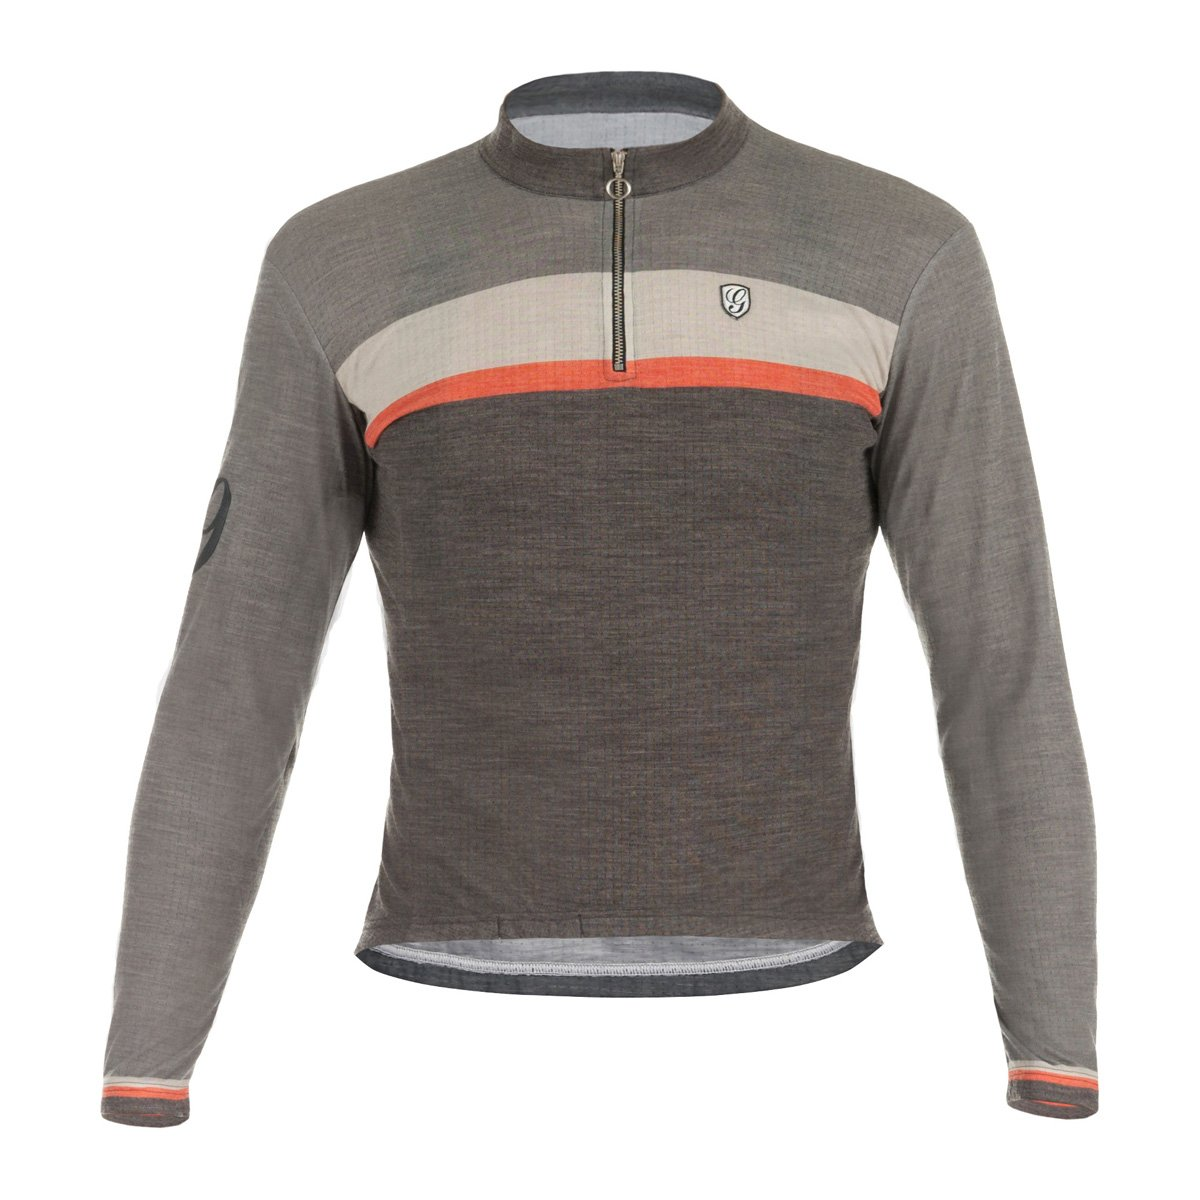 Giordana 2017 メンズ スポーツ メリノ ウールブレンド 長袖 サイクリングジャージ - GS-S6-LSWO-GSPT-BEOR-02 Small Grey / Black with Red accents B01AT7I7P8